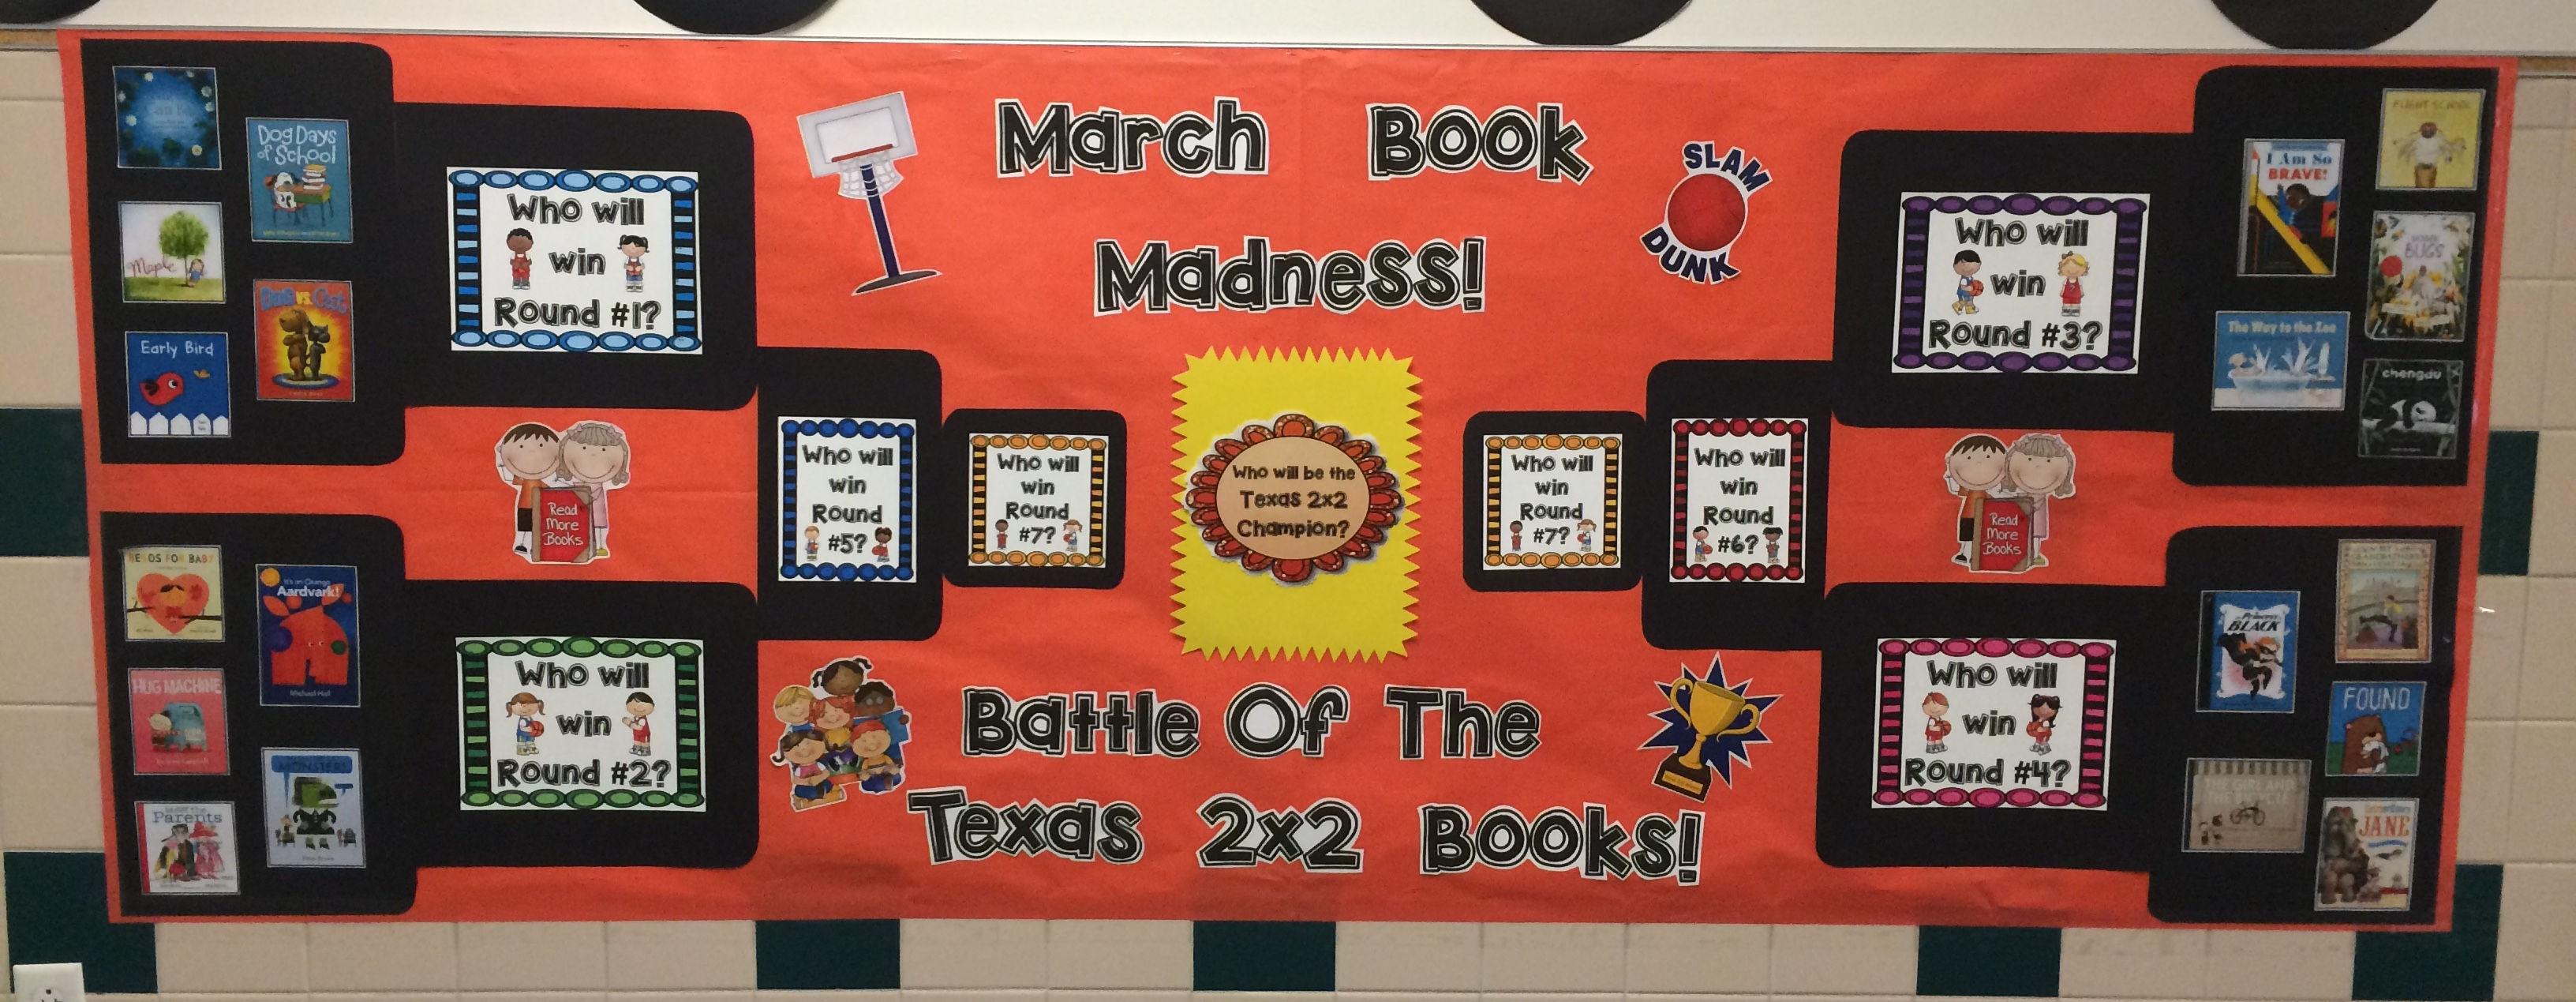 Battle of the Texas 2x2 books